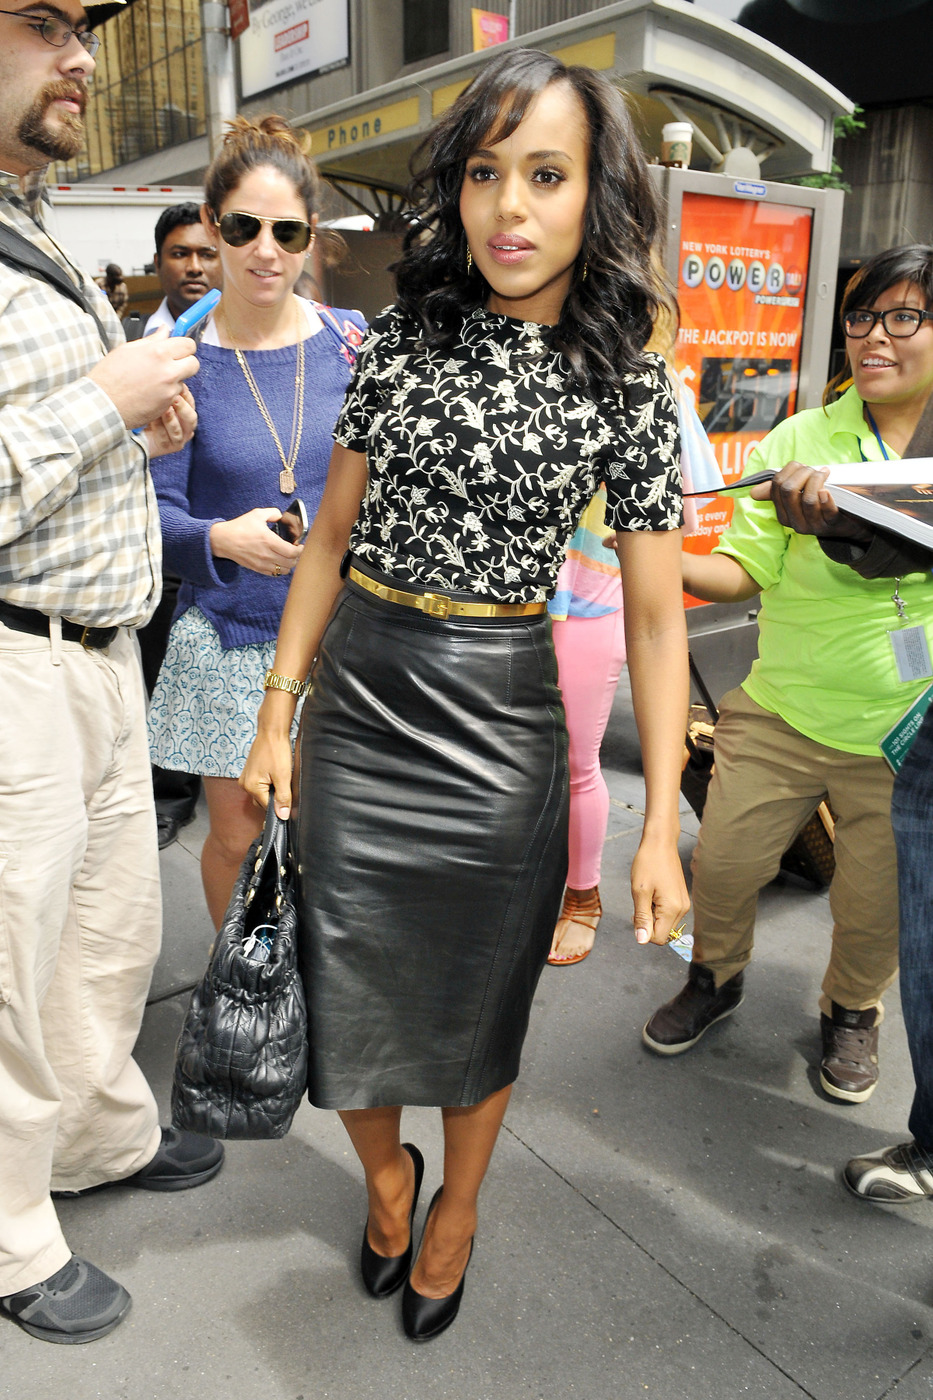 Kerry Washington signs autographs for lucky fans outside of the MTV studios in New York City